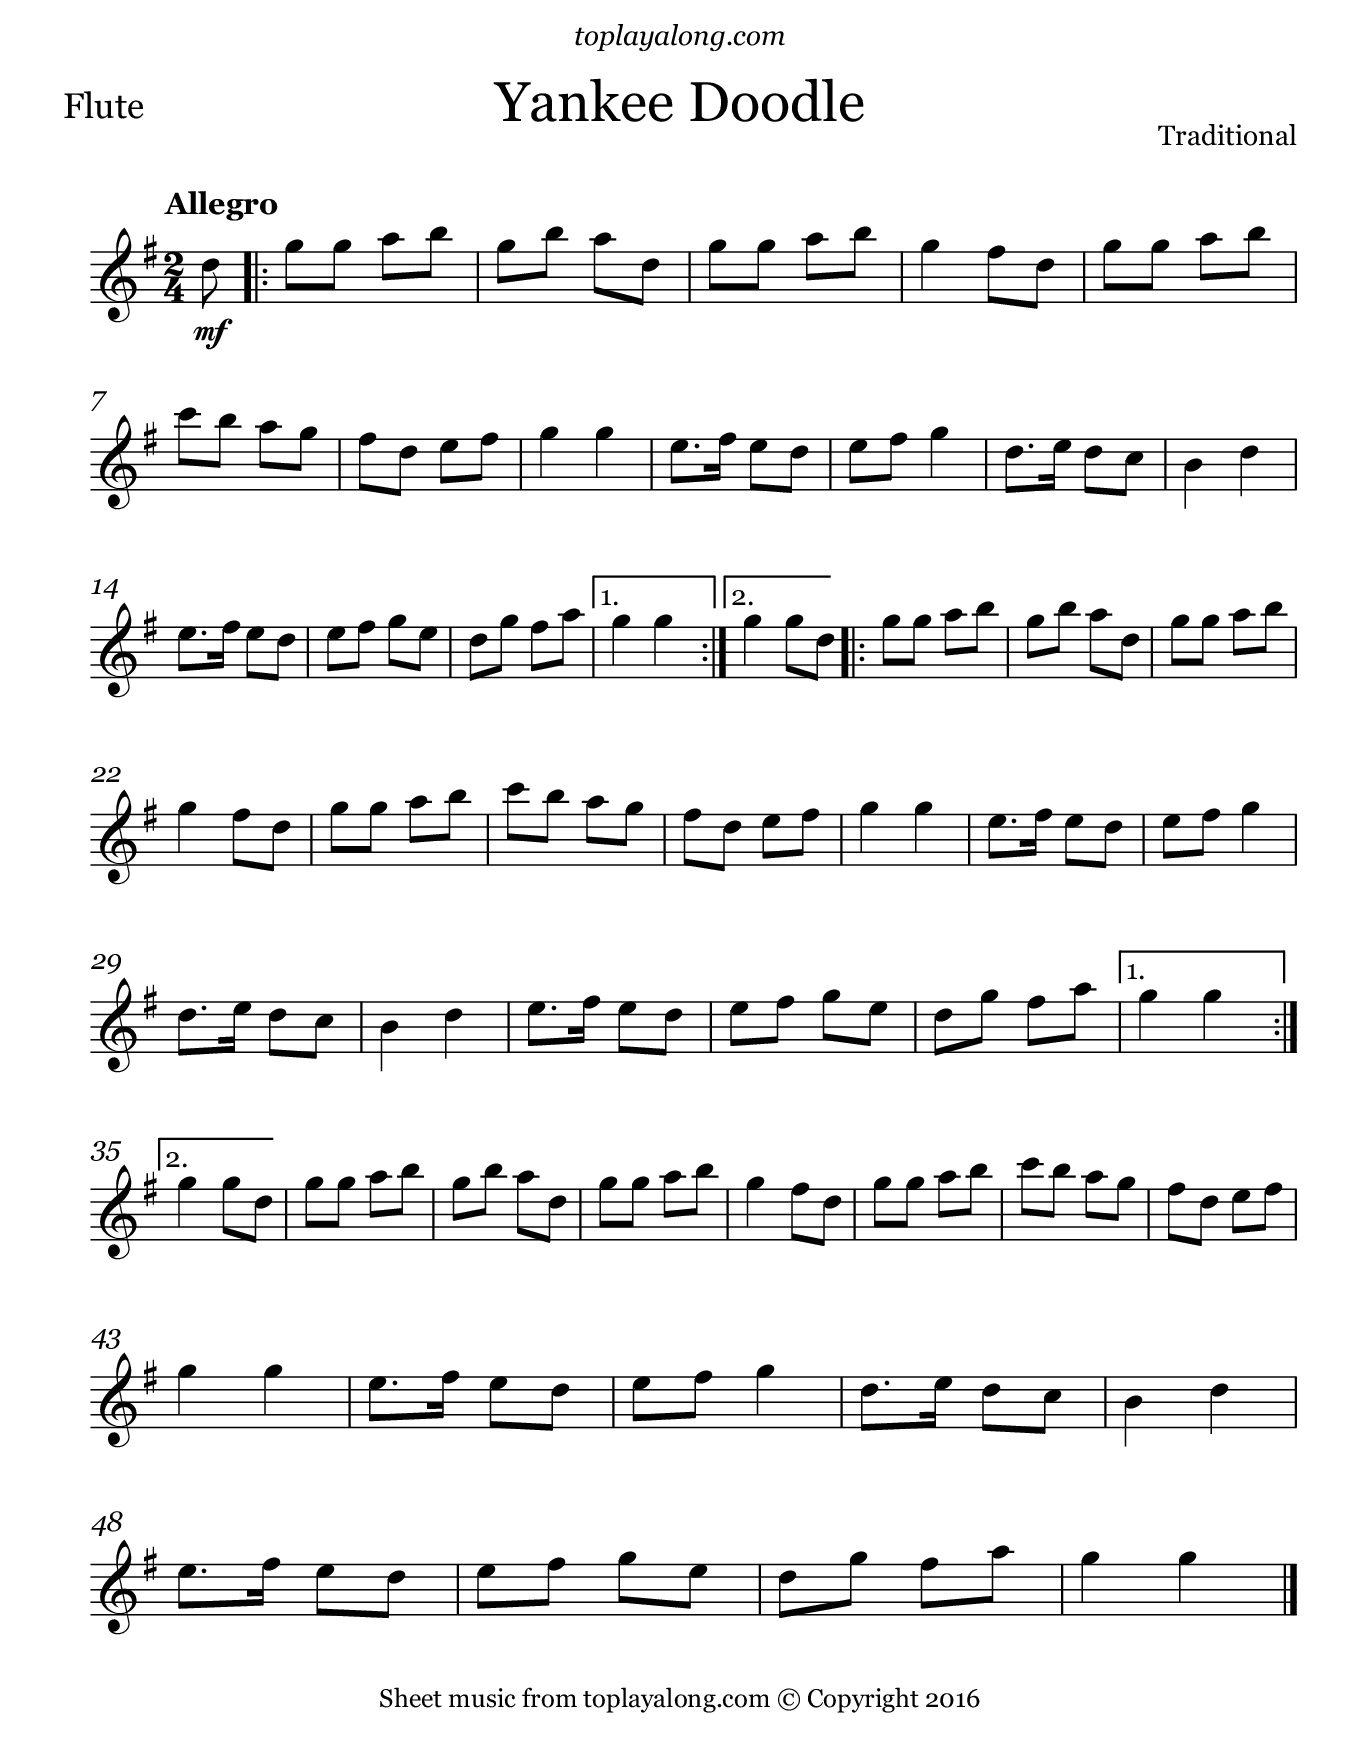 Yankee Doodle. Sheet music for Flute, page 1.